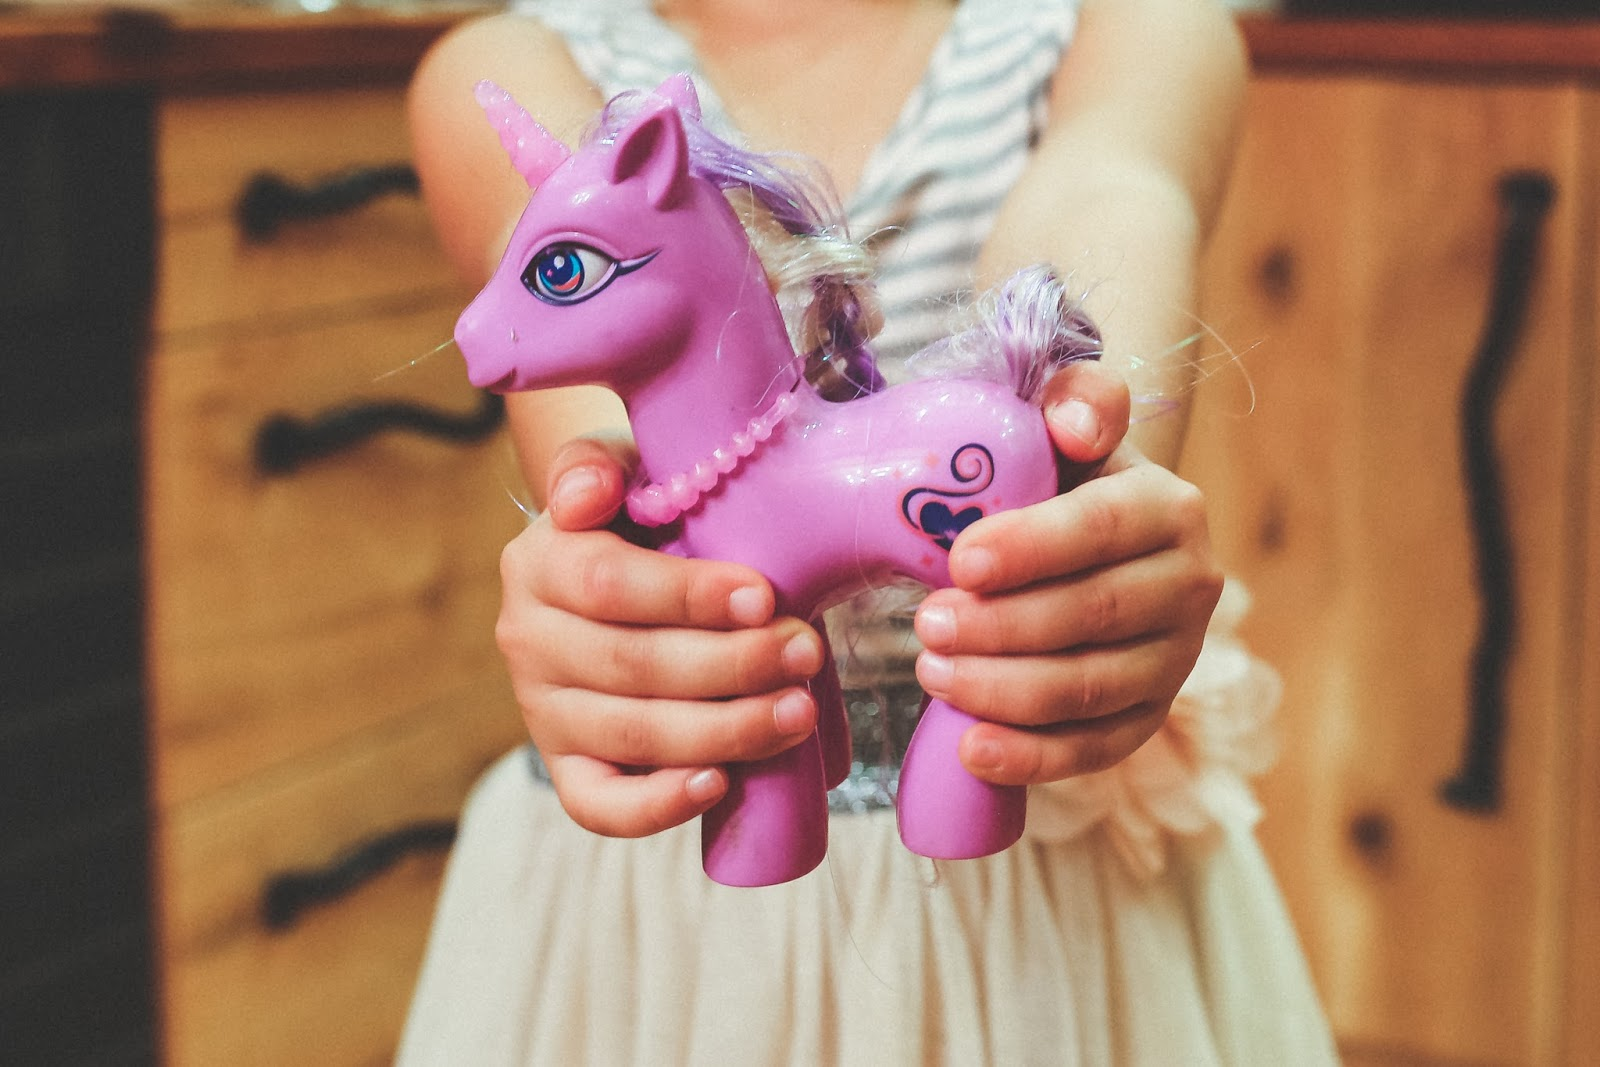 Little girl's hands holding a pink My Little Pony